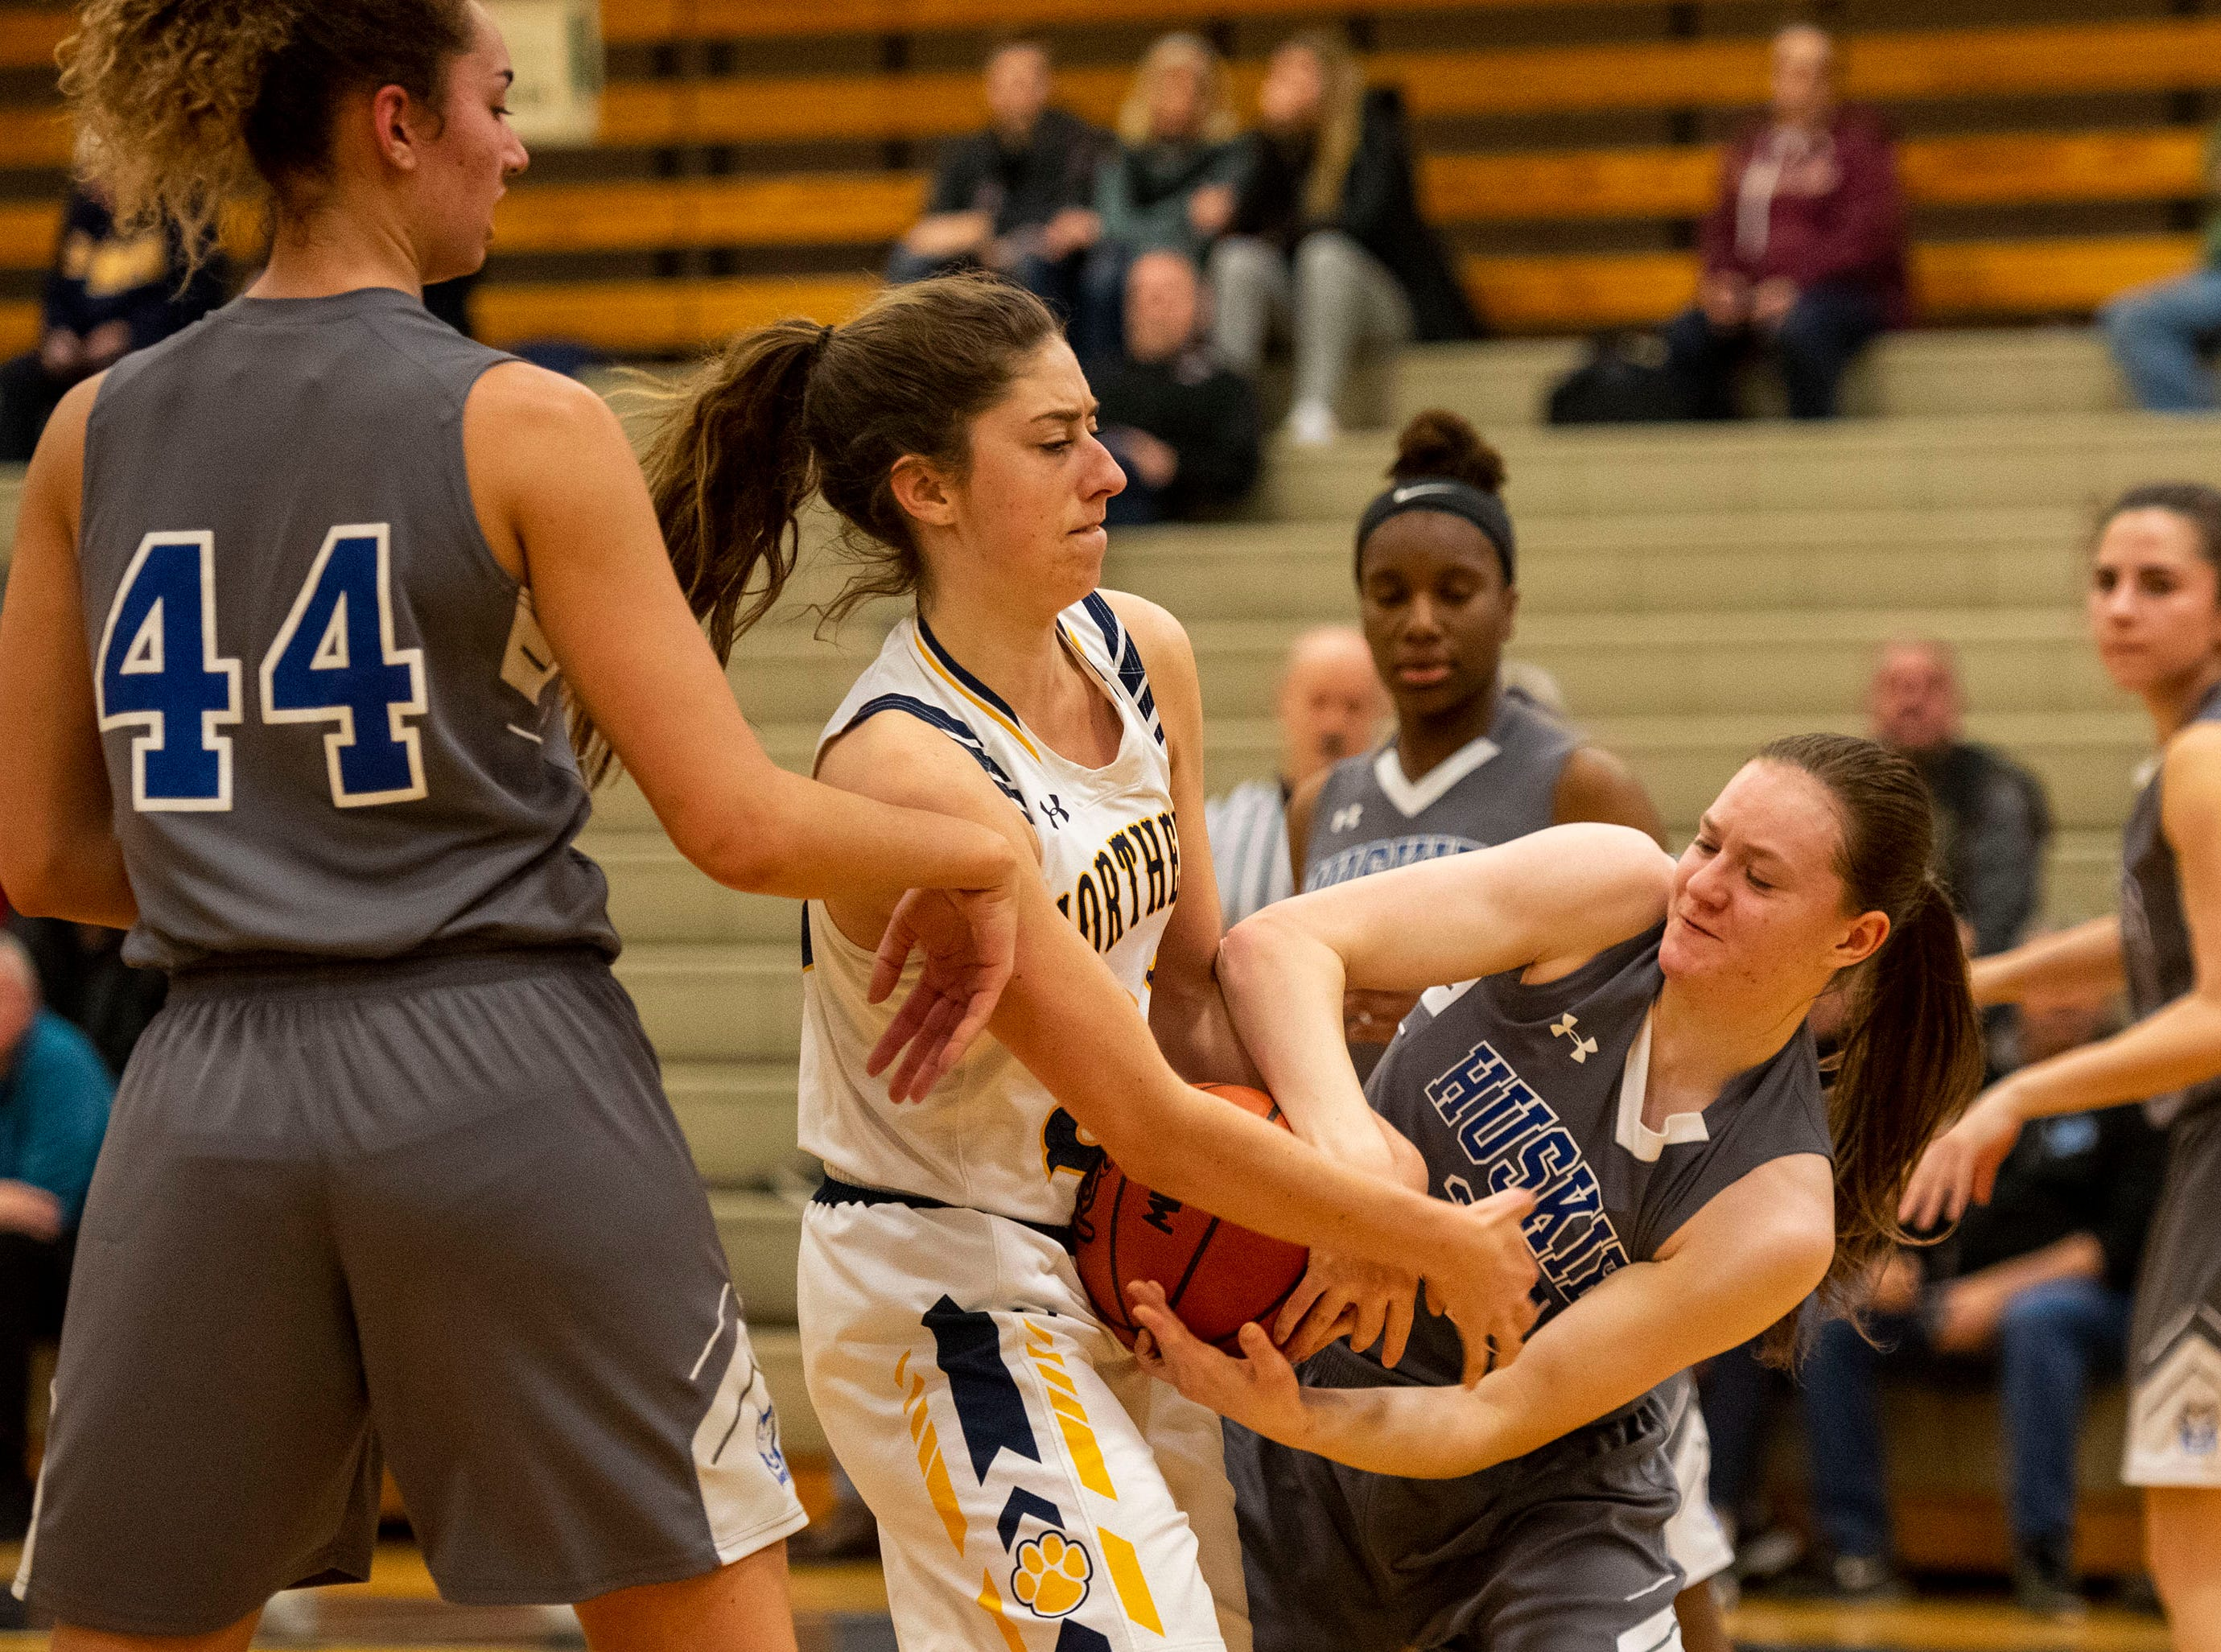 Port Huron Northern High School forward Syndey Koppinger (center) fights with Lakeview High School guard Taedom Stein for the ball during the MHSAA Division 1 Region 8 girls basketball finals Wednesday, March 13, 2019 at Macomb Dakota High School.